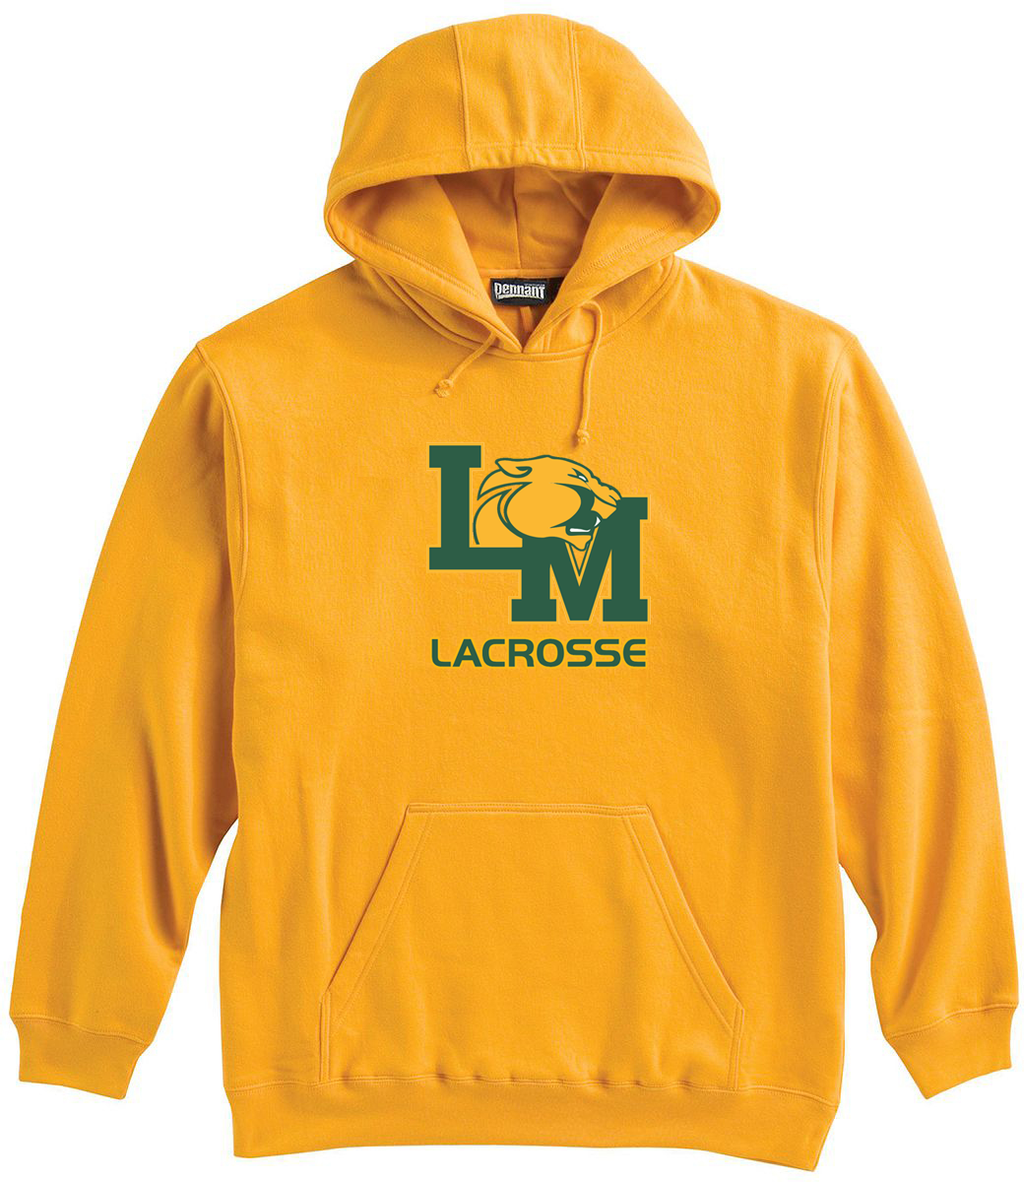 Little Miami Lacrosse Gold Sweatshirt